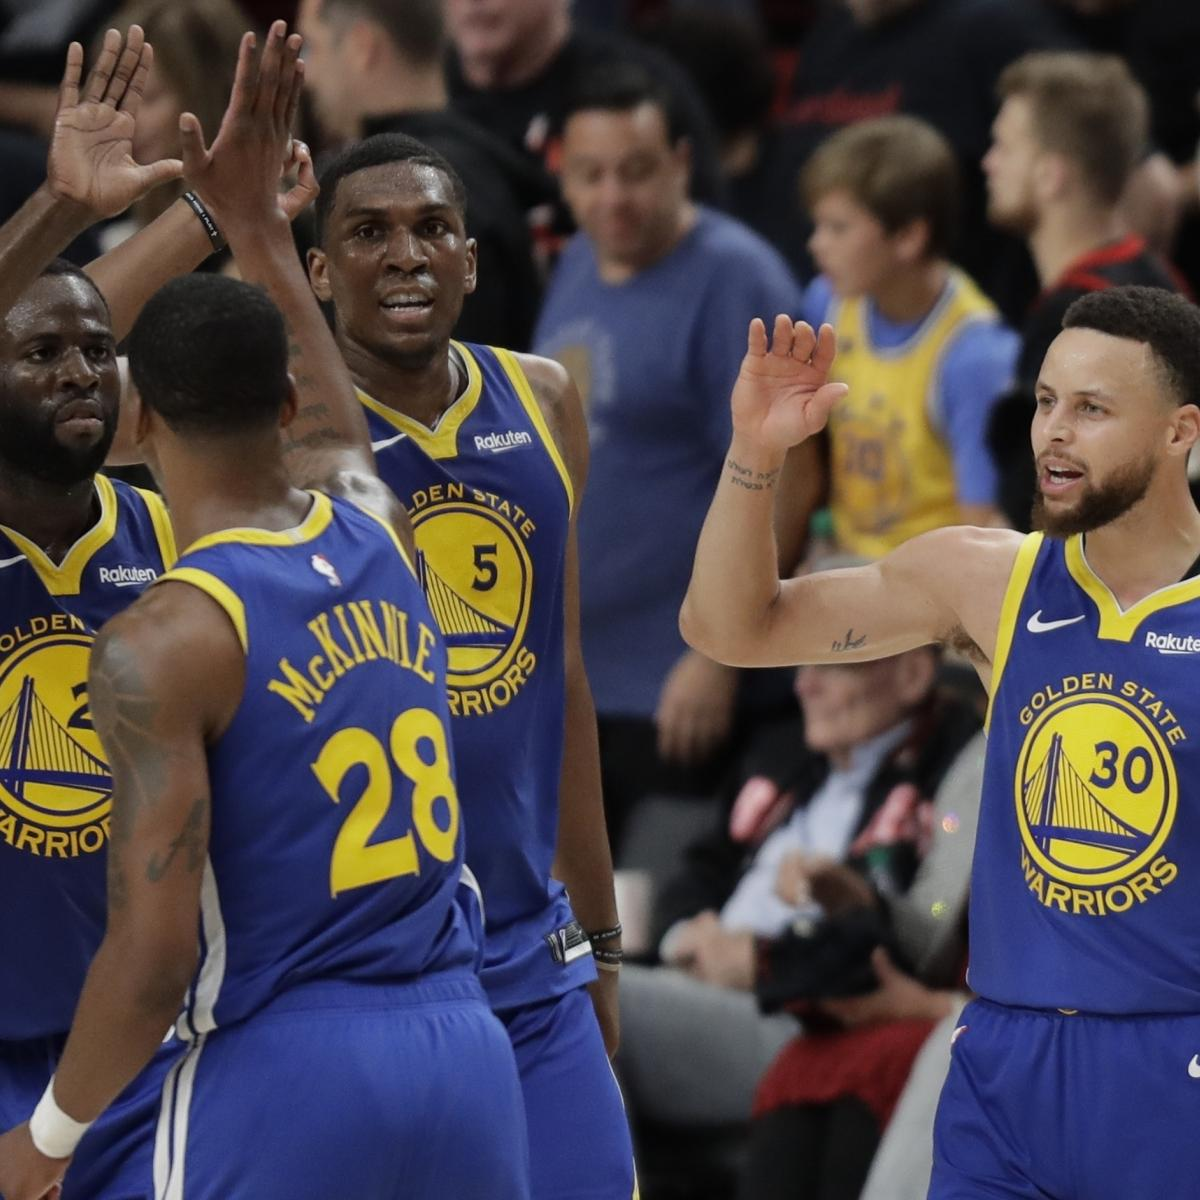 Houston Rockets Vs Golden State Warriors Lineup: NBA Finals 2019: Early Odds, Schedule As Warriors Await